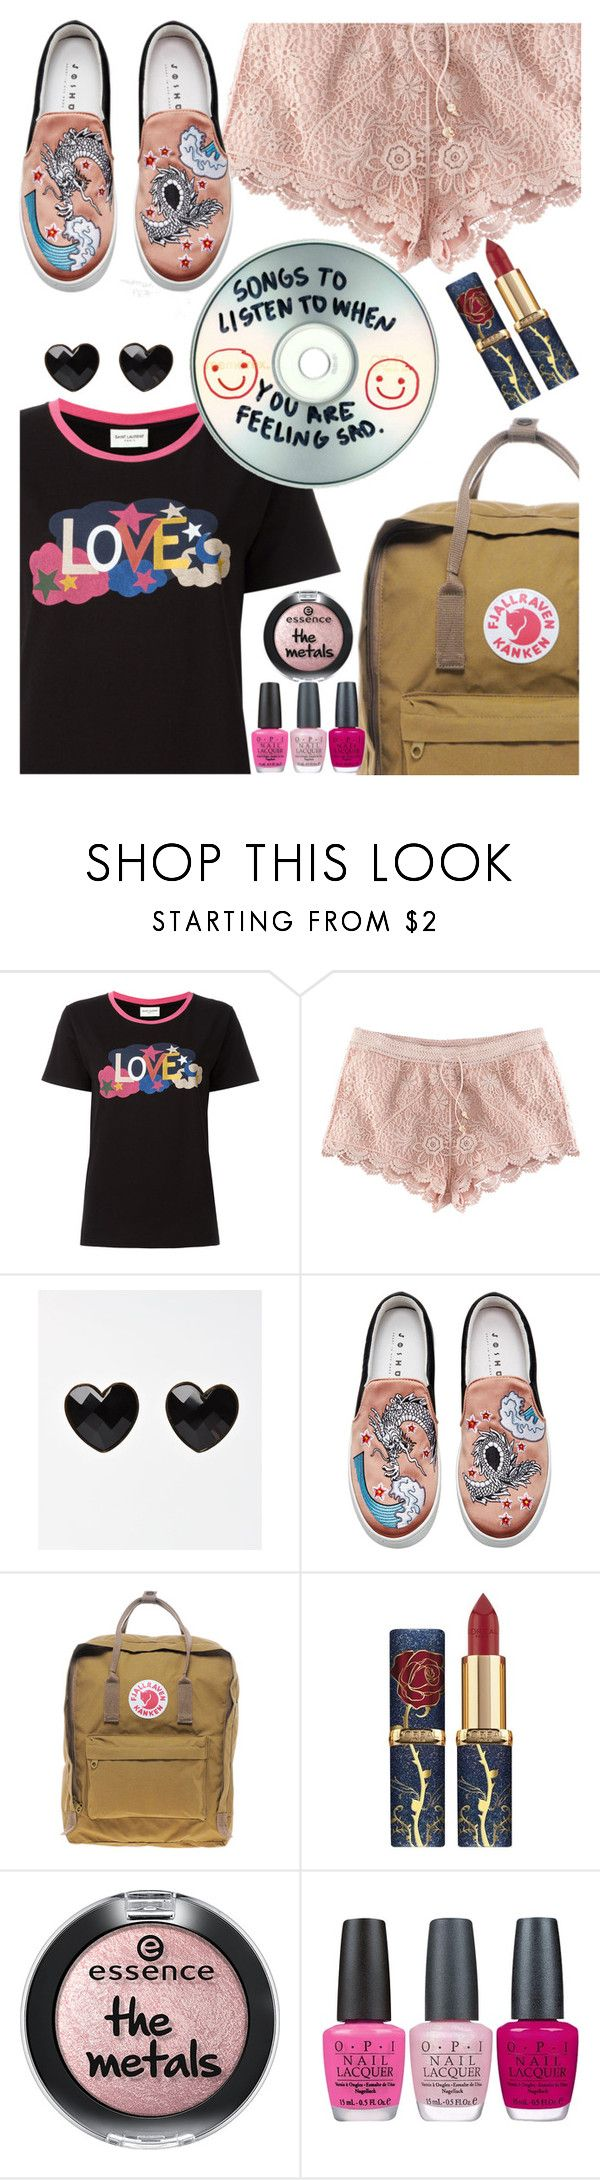 """""""its a Mix!"""" by elliewriter ❤ liked on Polyvore featuring Yves Saint Laurent, H&M, Joshua's, Fjällräven, OPI and ItsAmix"""